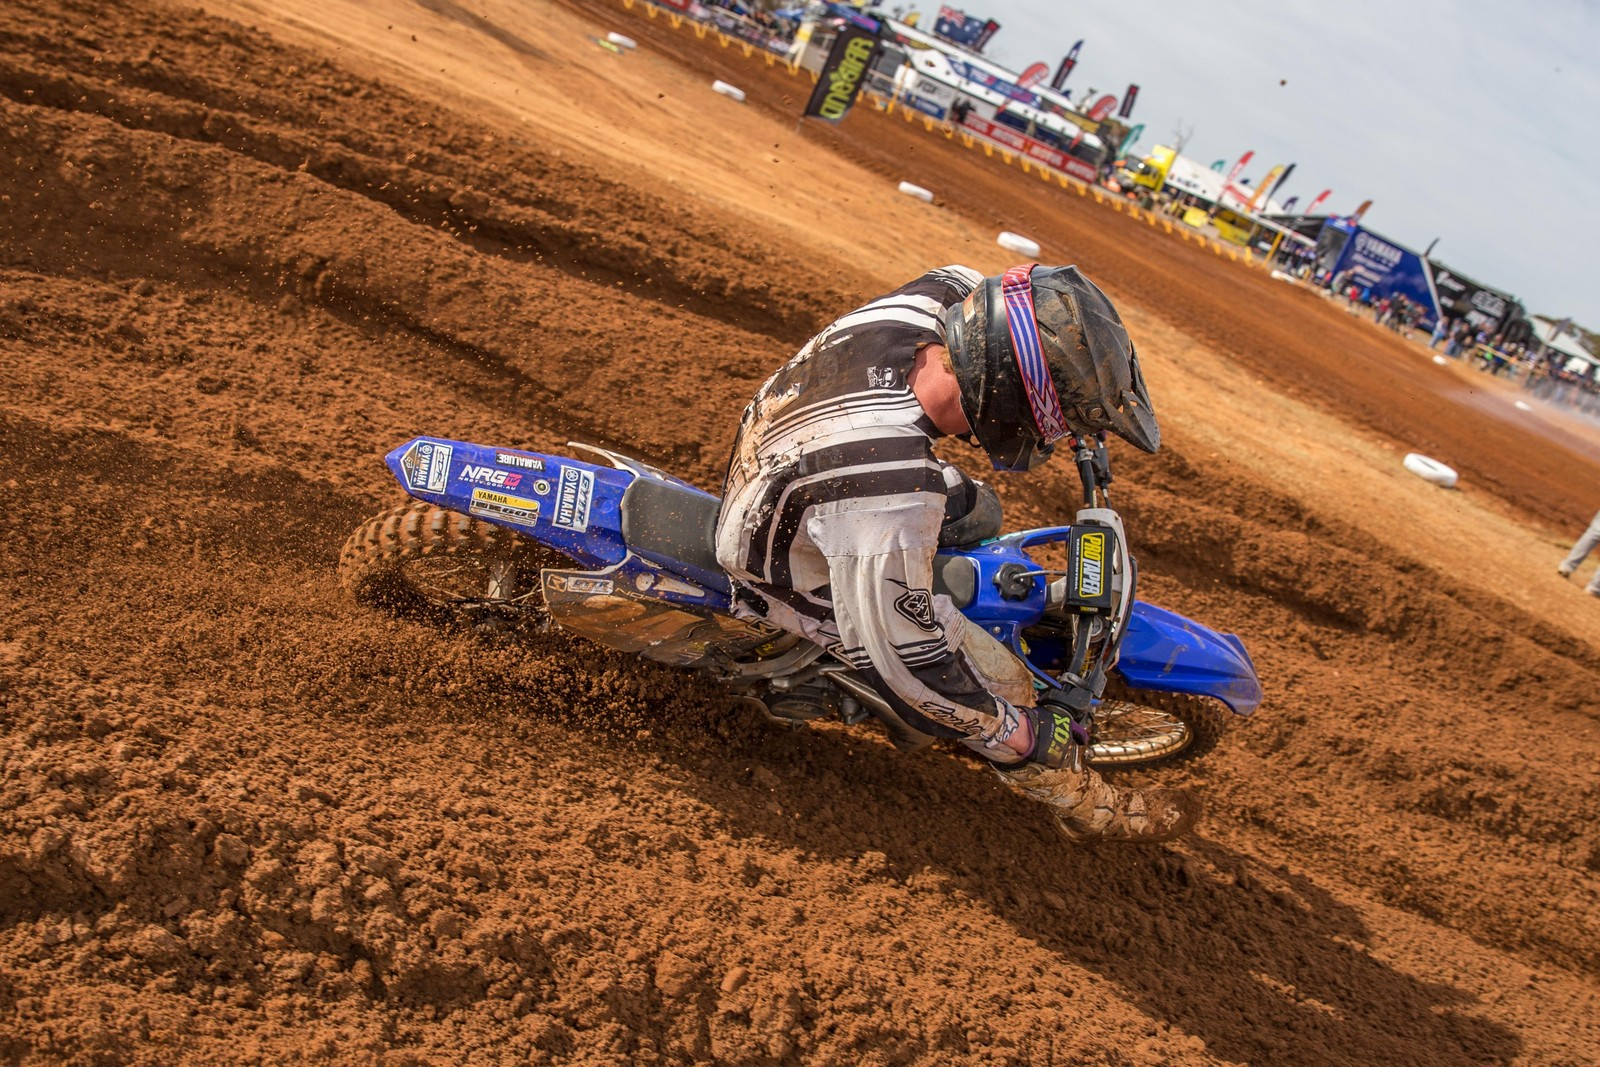 Mitch Norris - Australian Motul Mx Championships: Round 4, Murray Bridge - Motocross Pictures - Vital MX